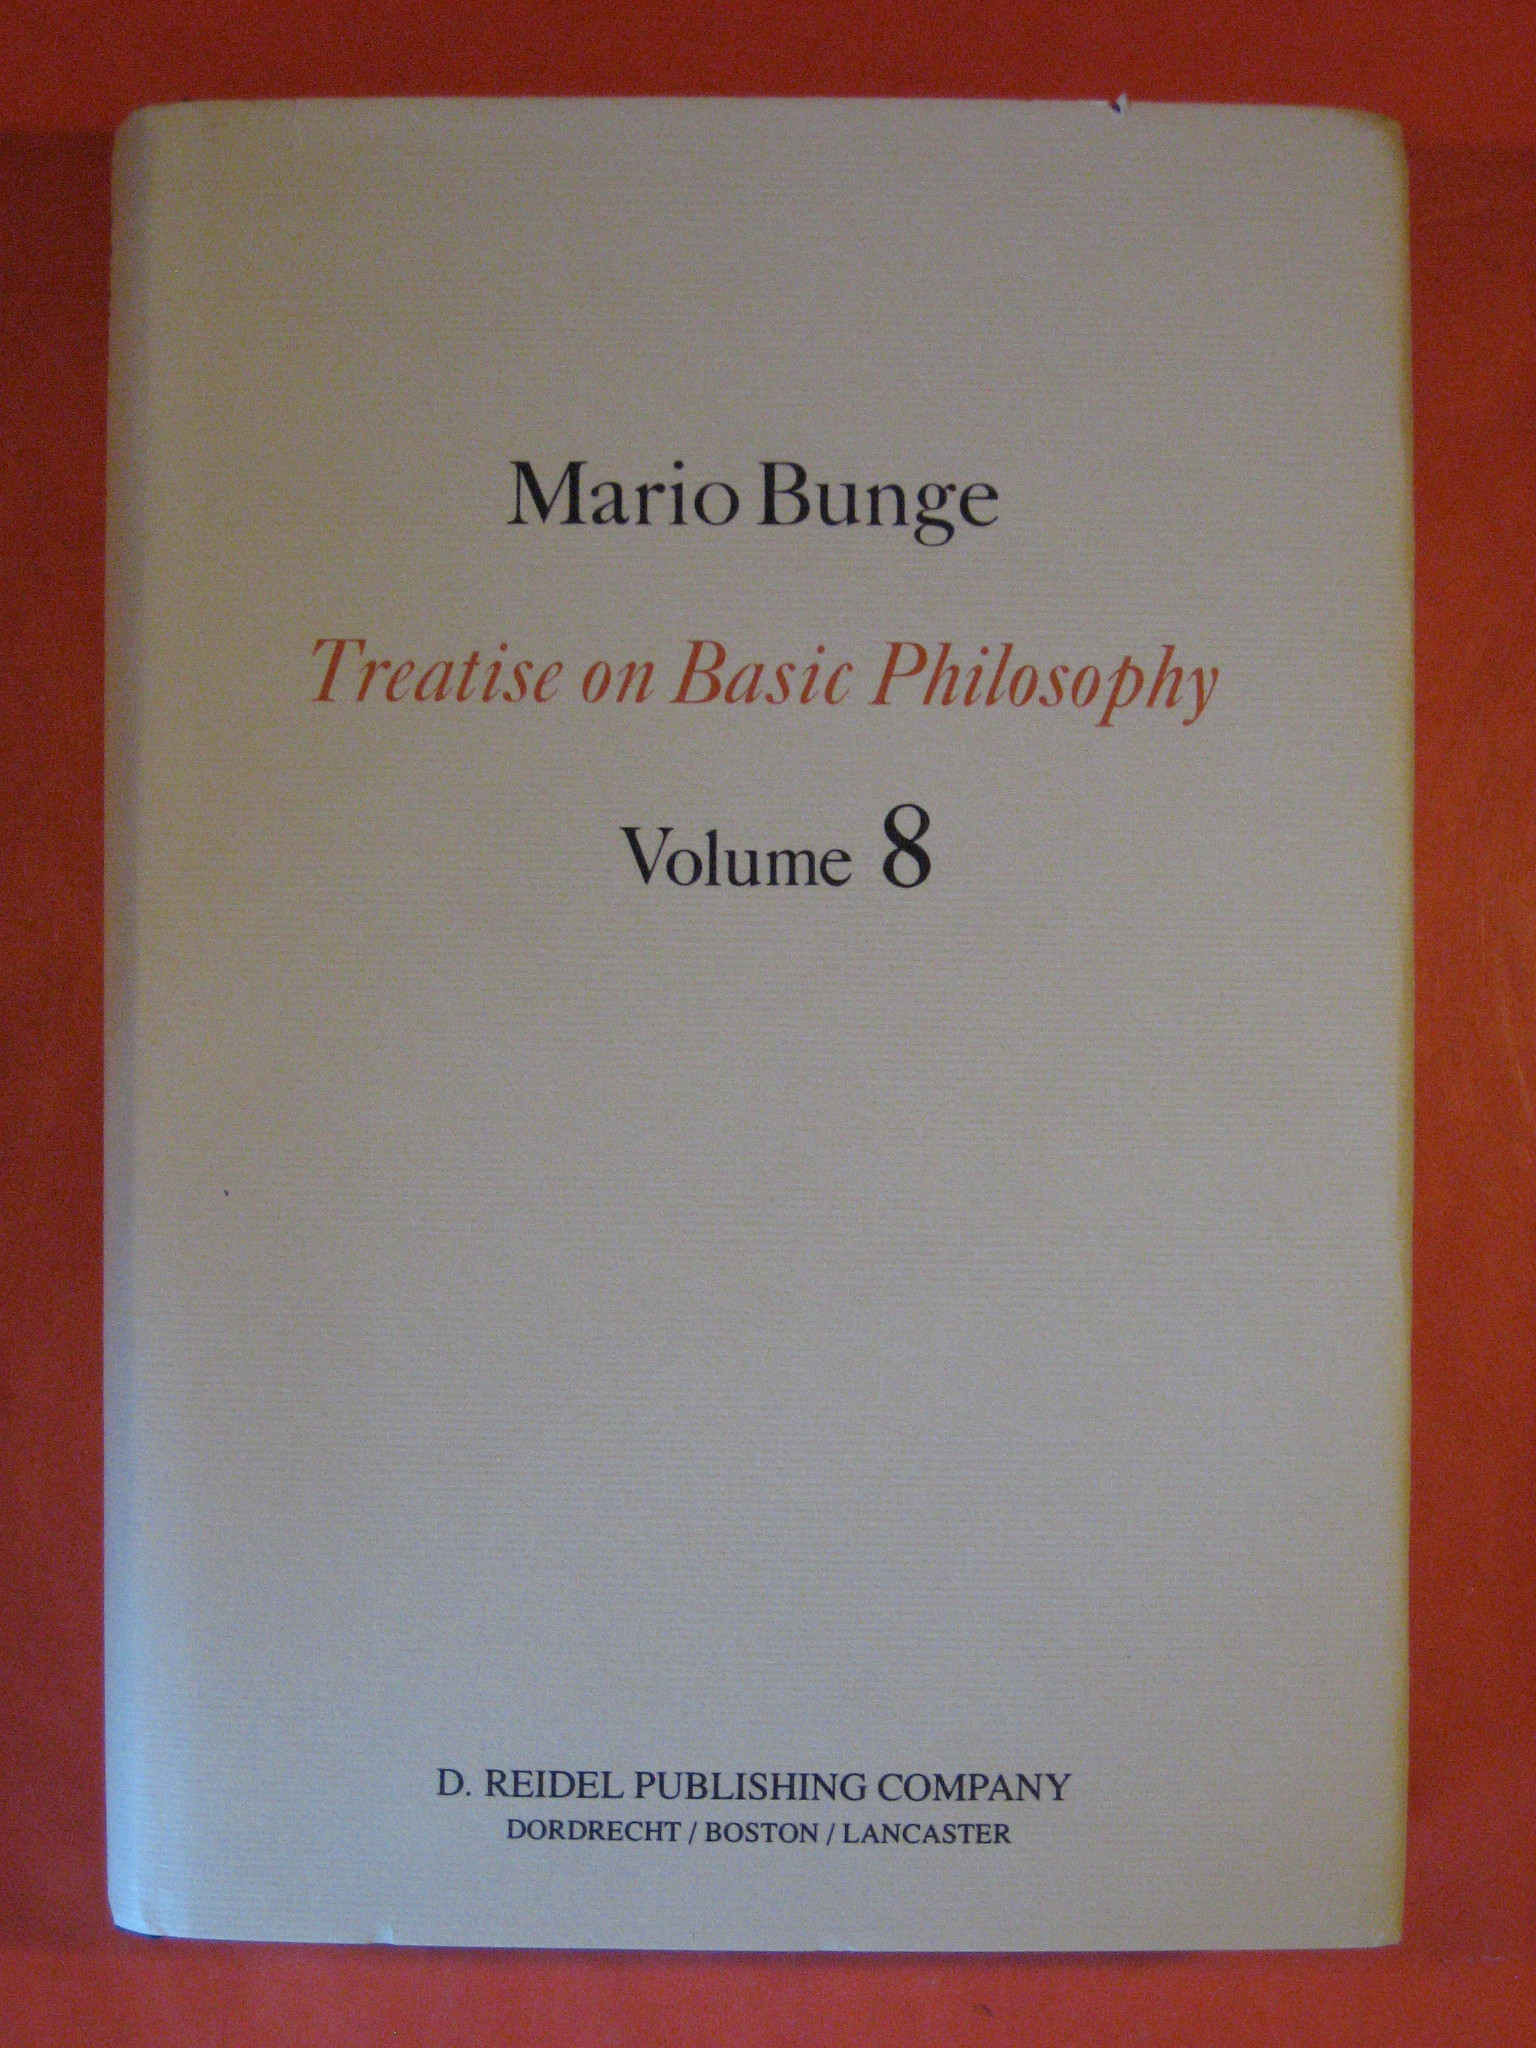 Treatise on Basic Philosophy (Volume 8): Ethics: The Good and The Right, Bunge, Mario